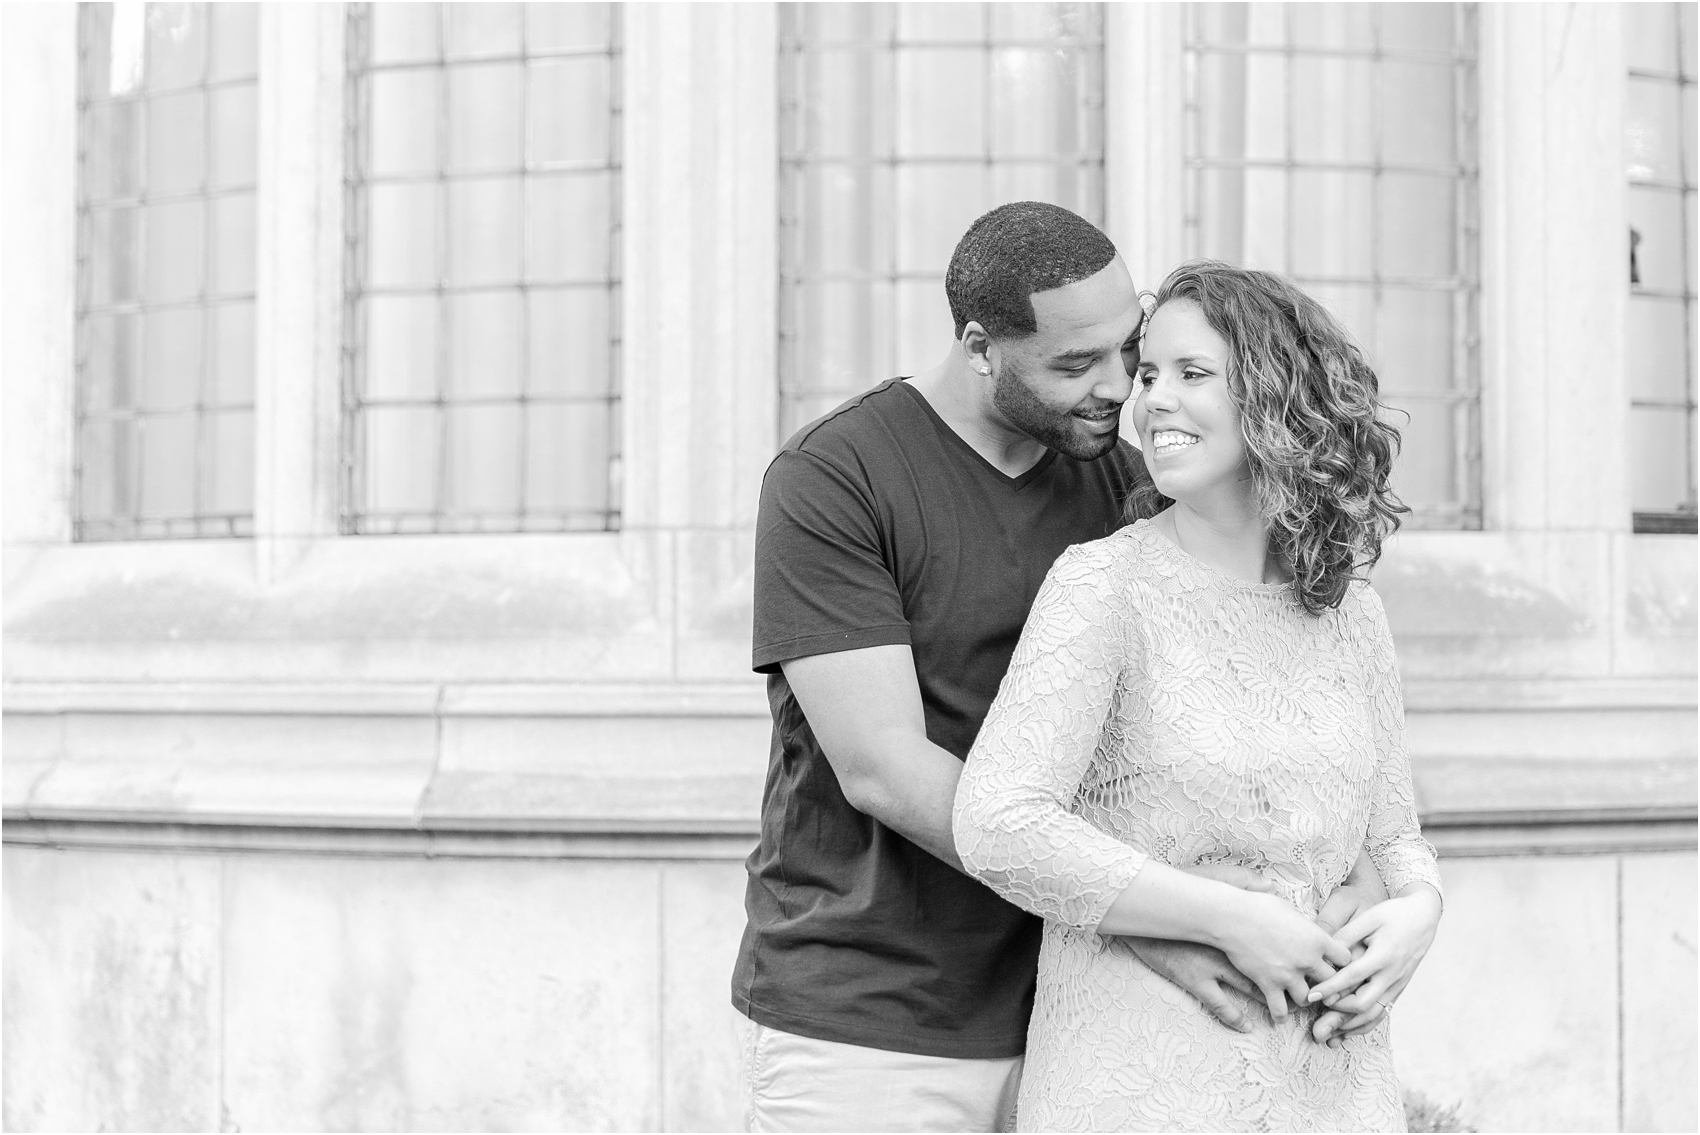 romantic-fun-university-of-michigan-engagement-photos-in-ann-arbor-mi-by-courtney-carolyn-photography_0016.jpg